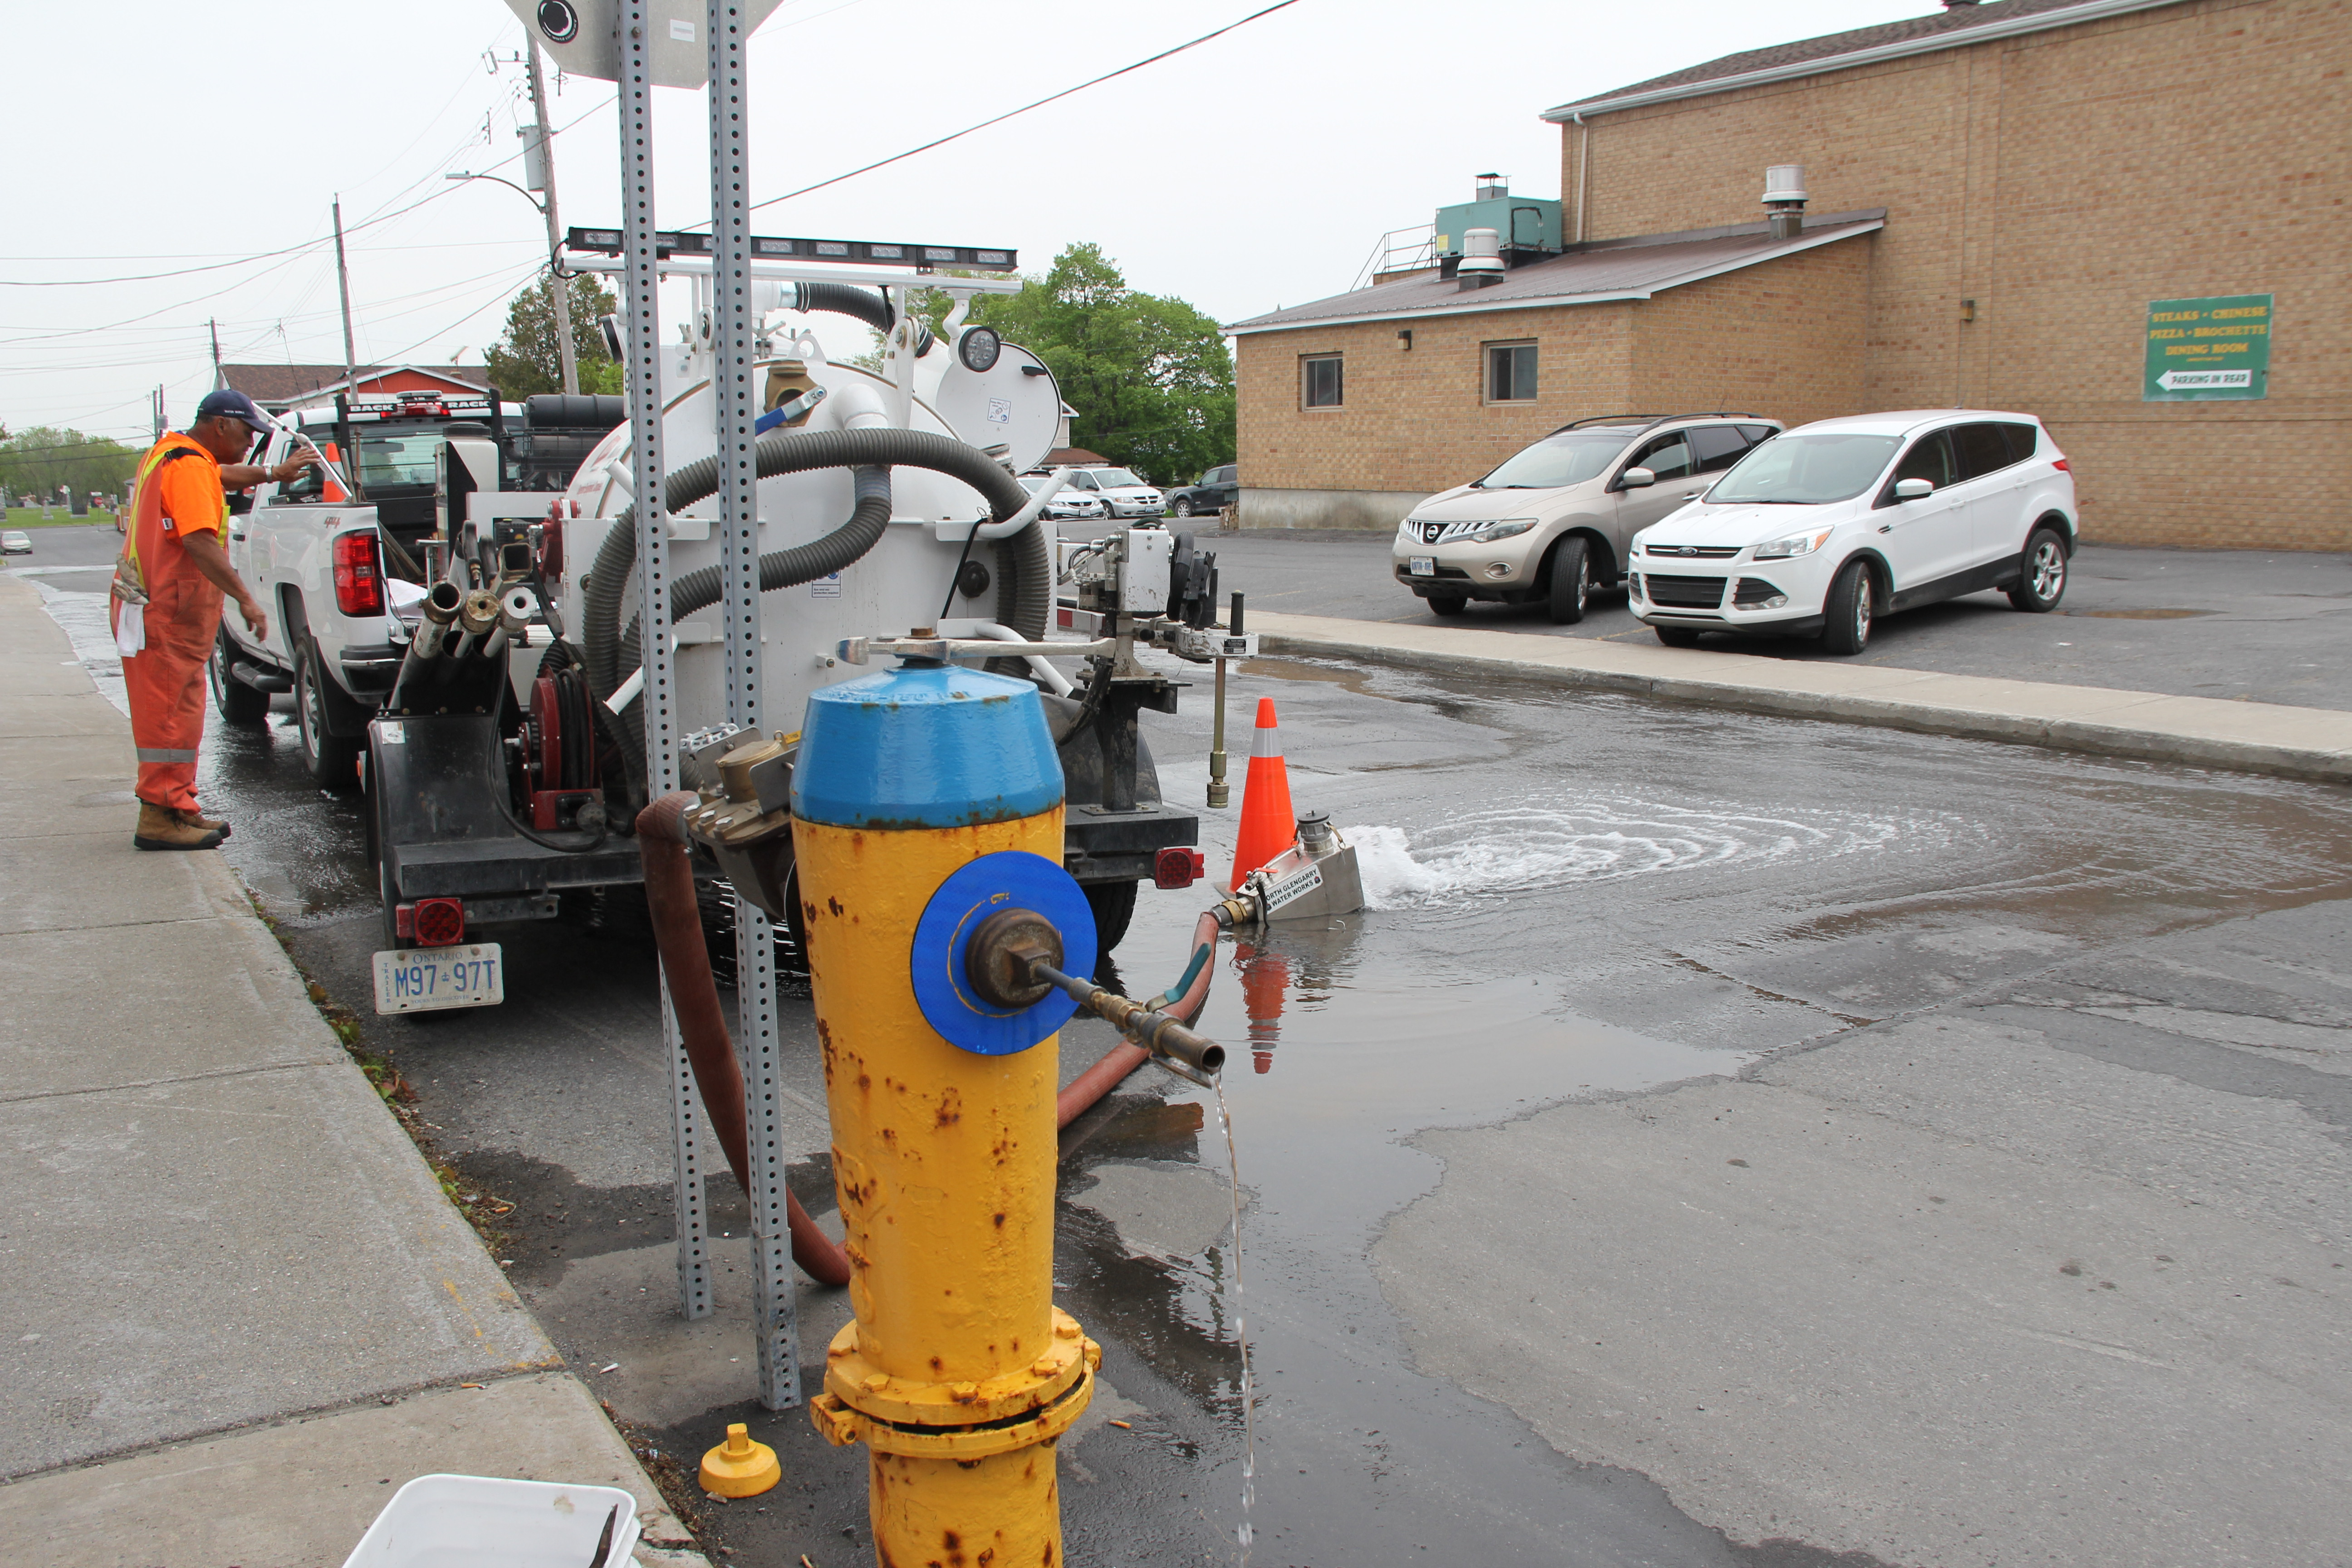 fire hydrant during flushing